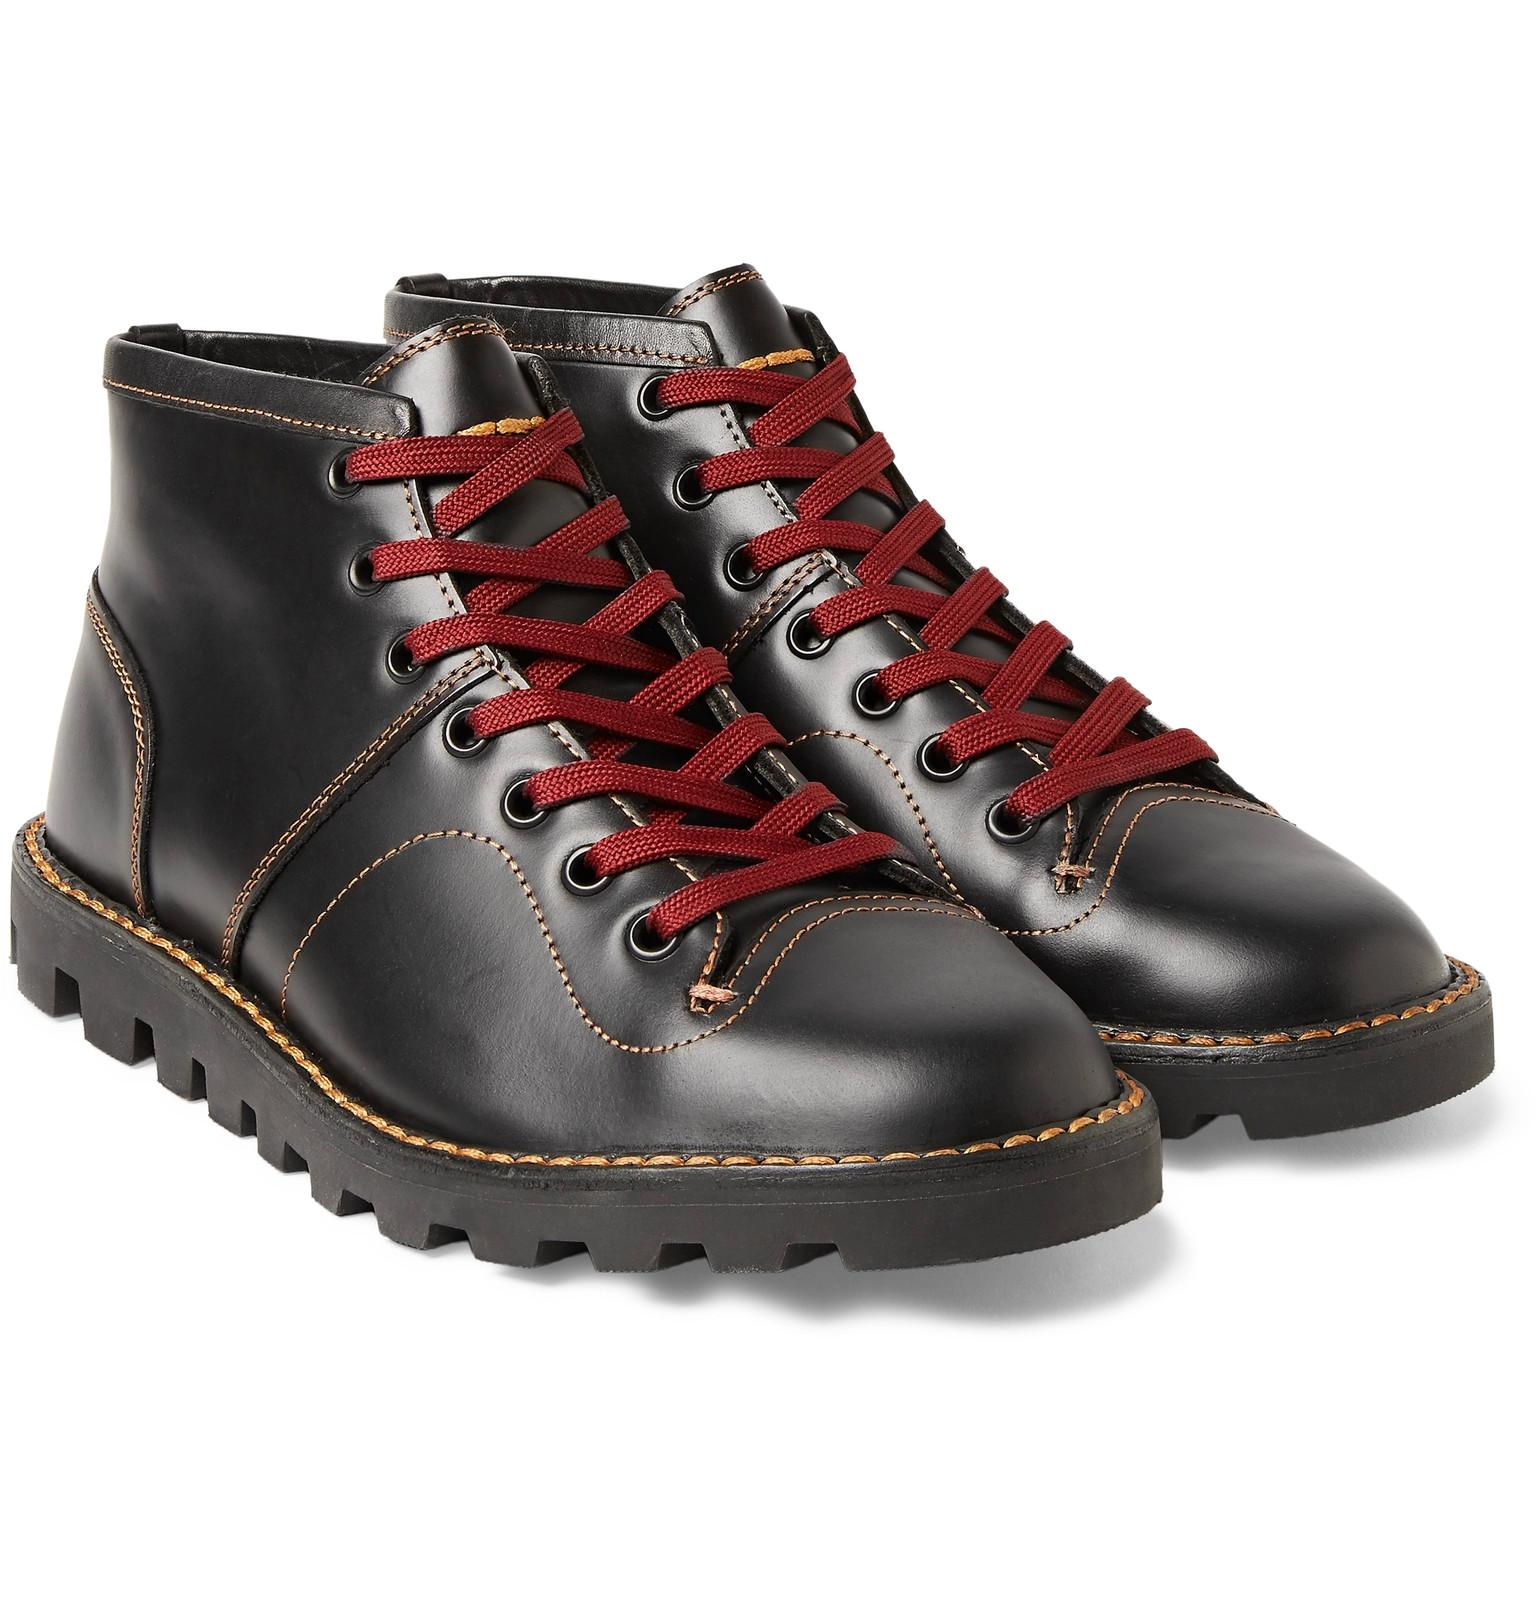 38c6aee4d9c3e COACH Leather Boxing Boots in Black for Men - Lyst